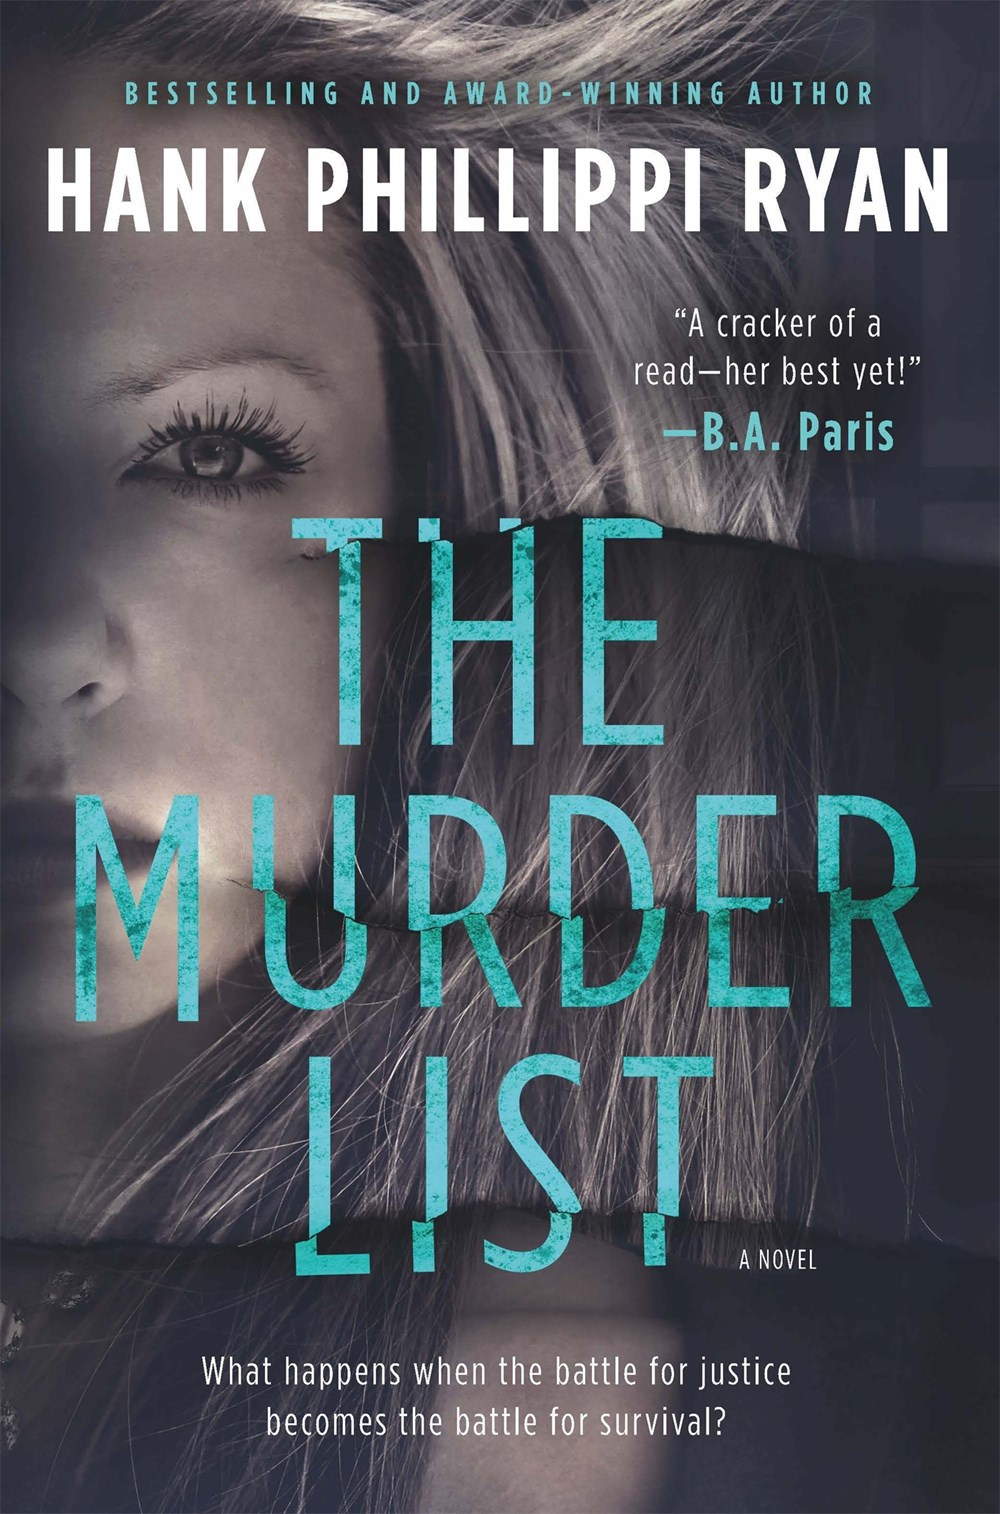 Hank Phillippi Ryan Wins Best Novel Anthony Award for 'The Murder List' | Book Pulse